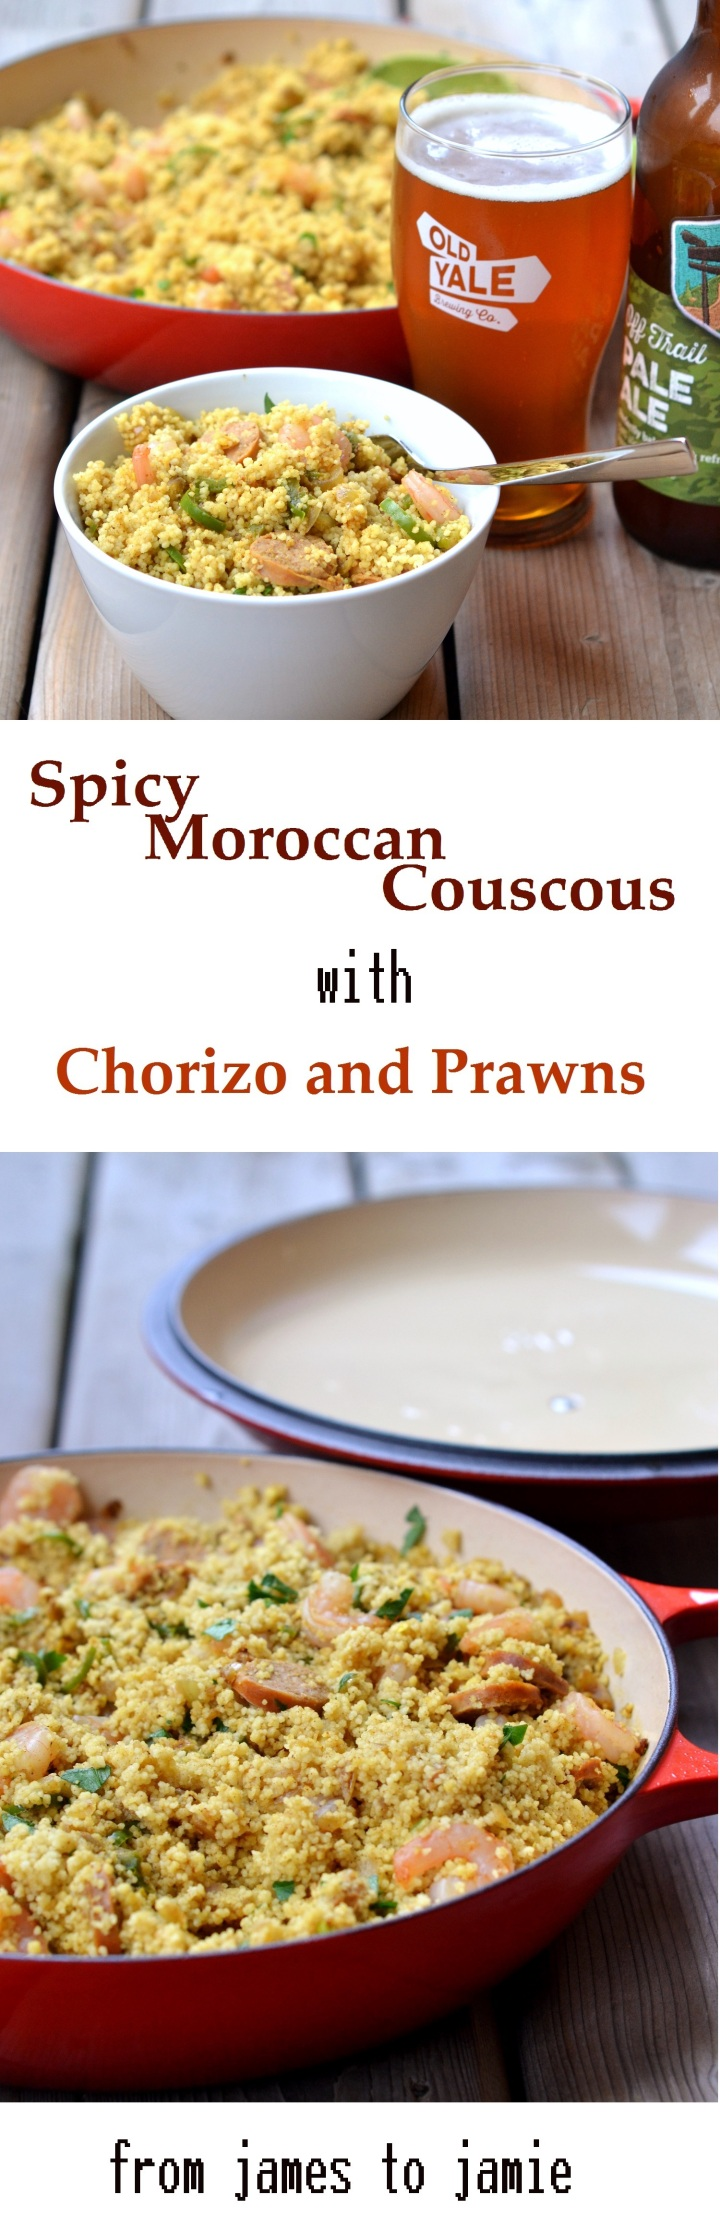 spicy moroccan couscous